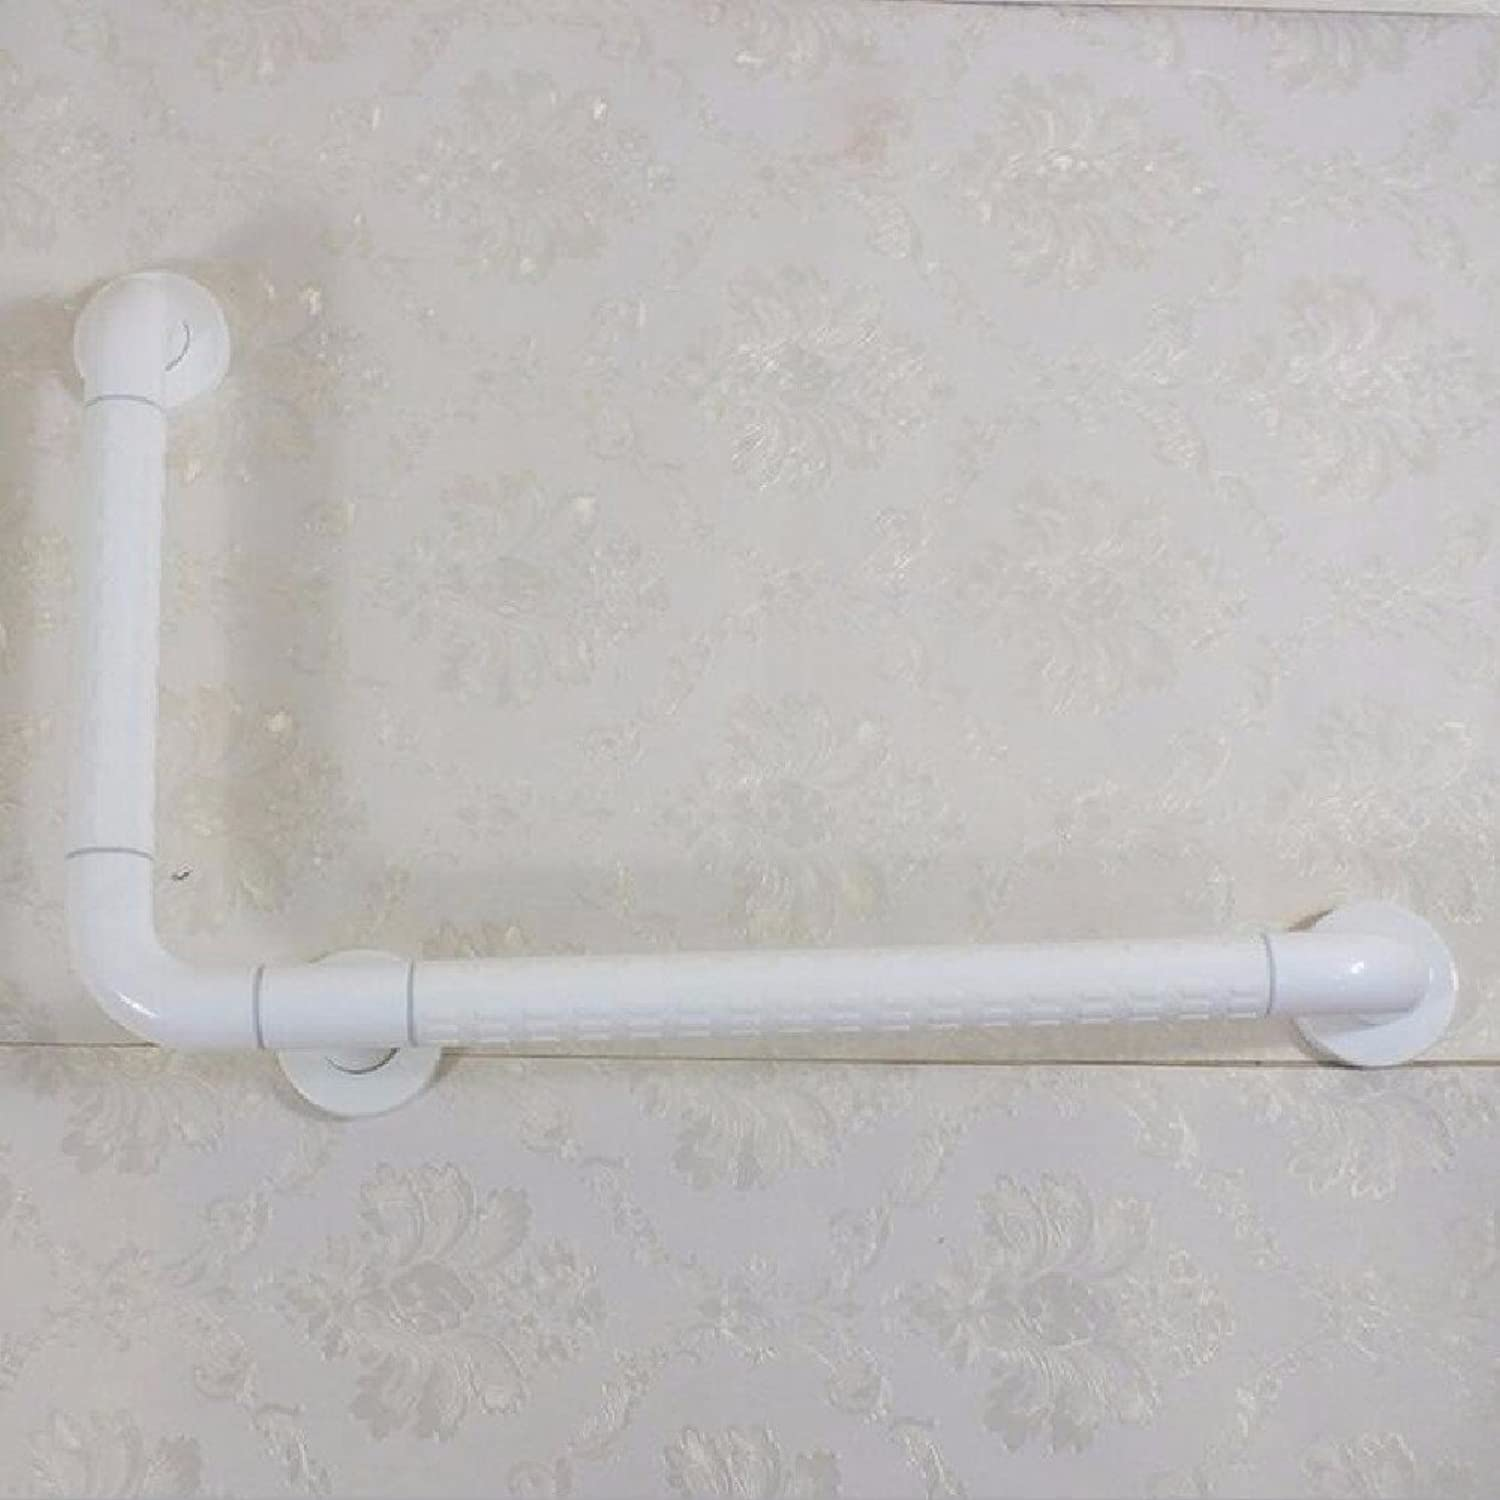 HQLCX Handrail Barrier Free Bathroom Disabled Elderly L Type Auxiliary Handrails,White